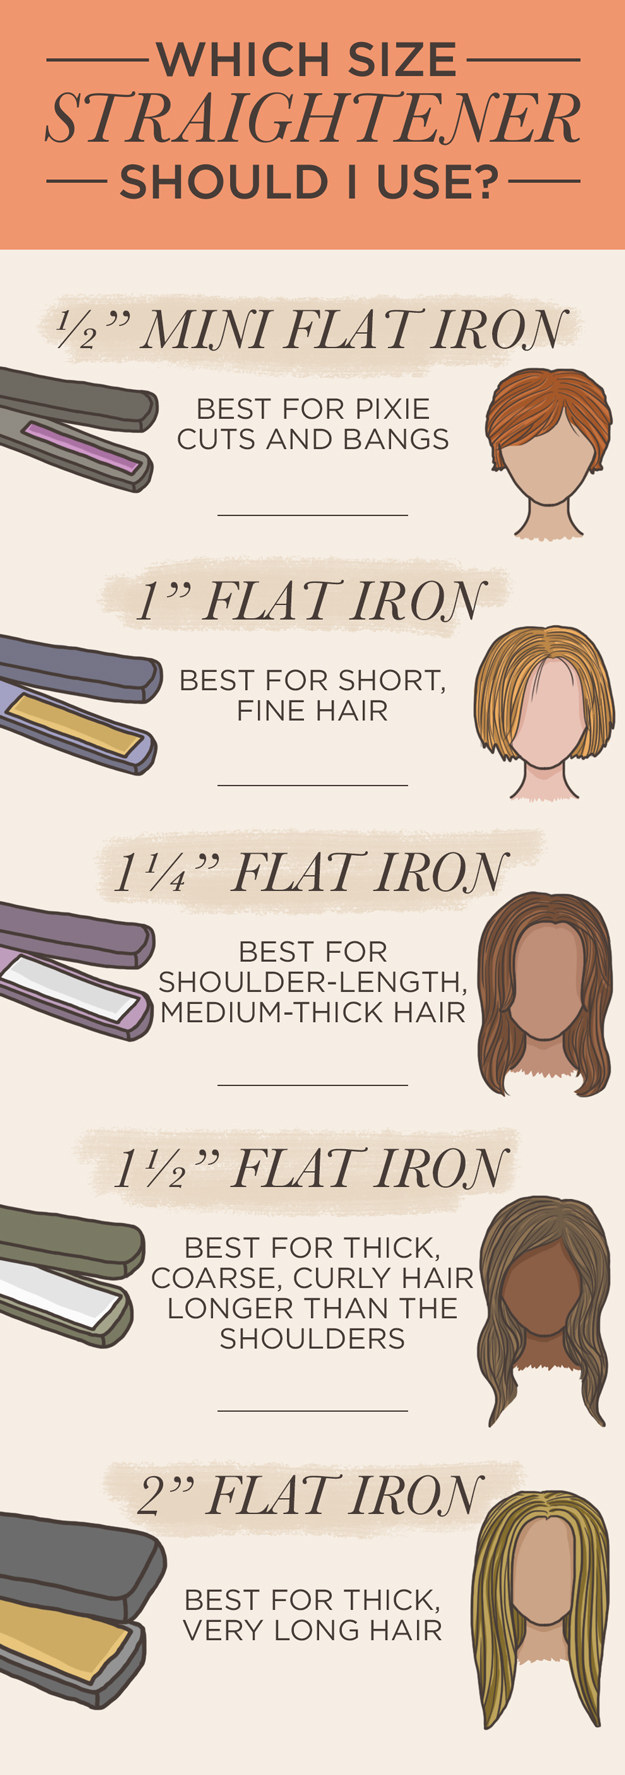 17 tricks for hair straightener 2